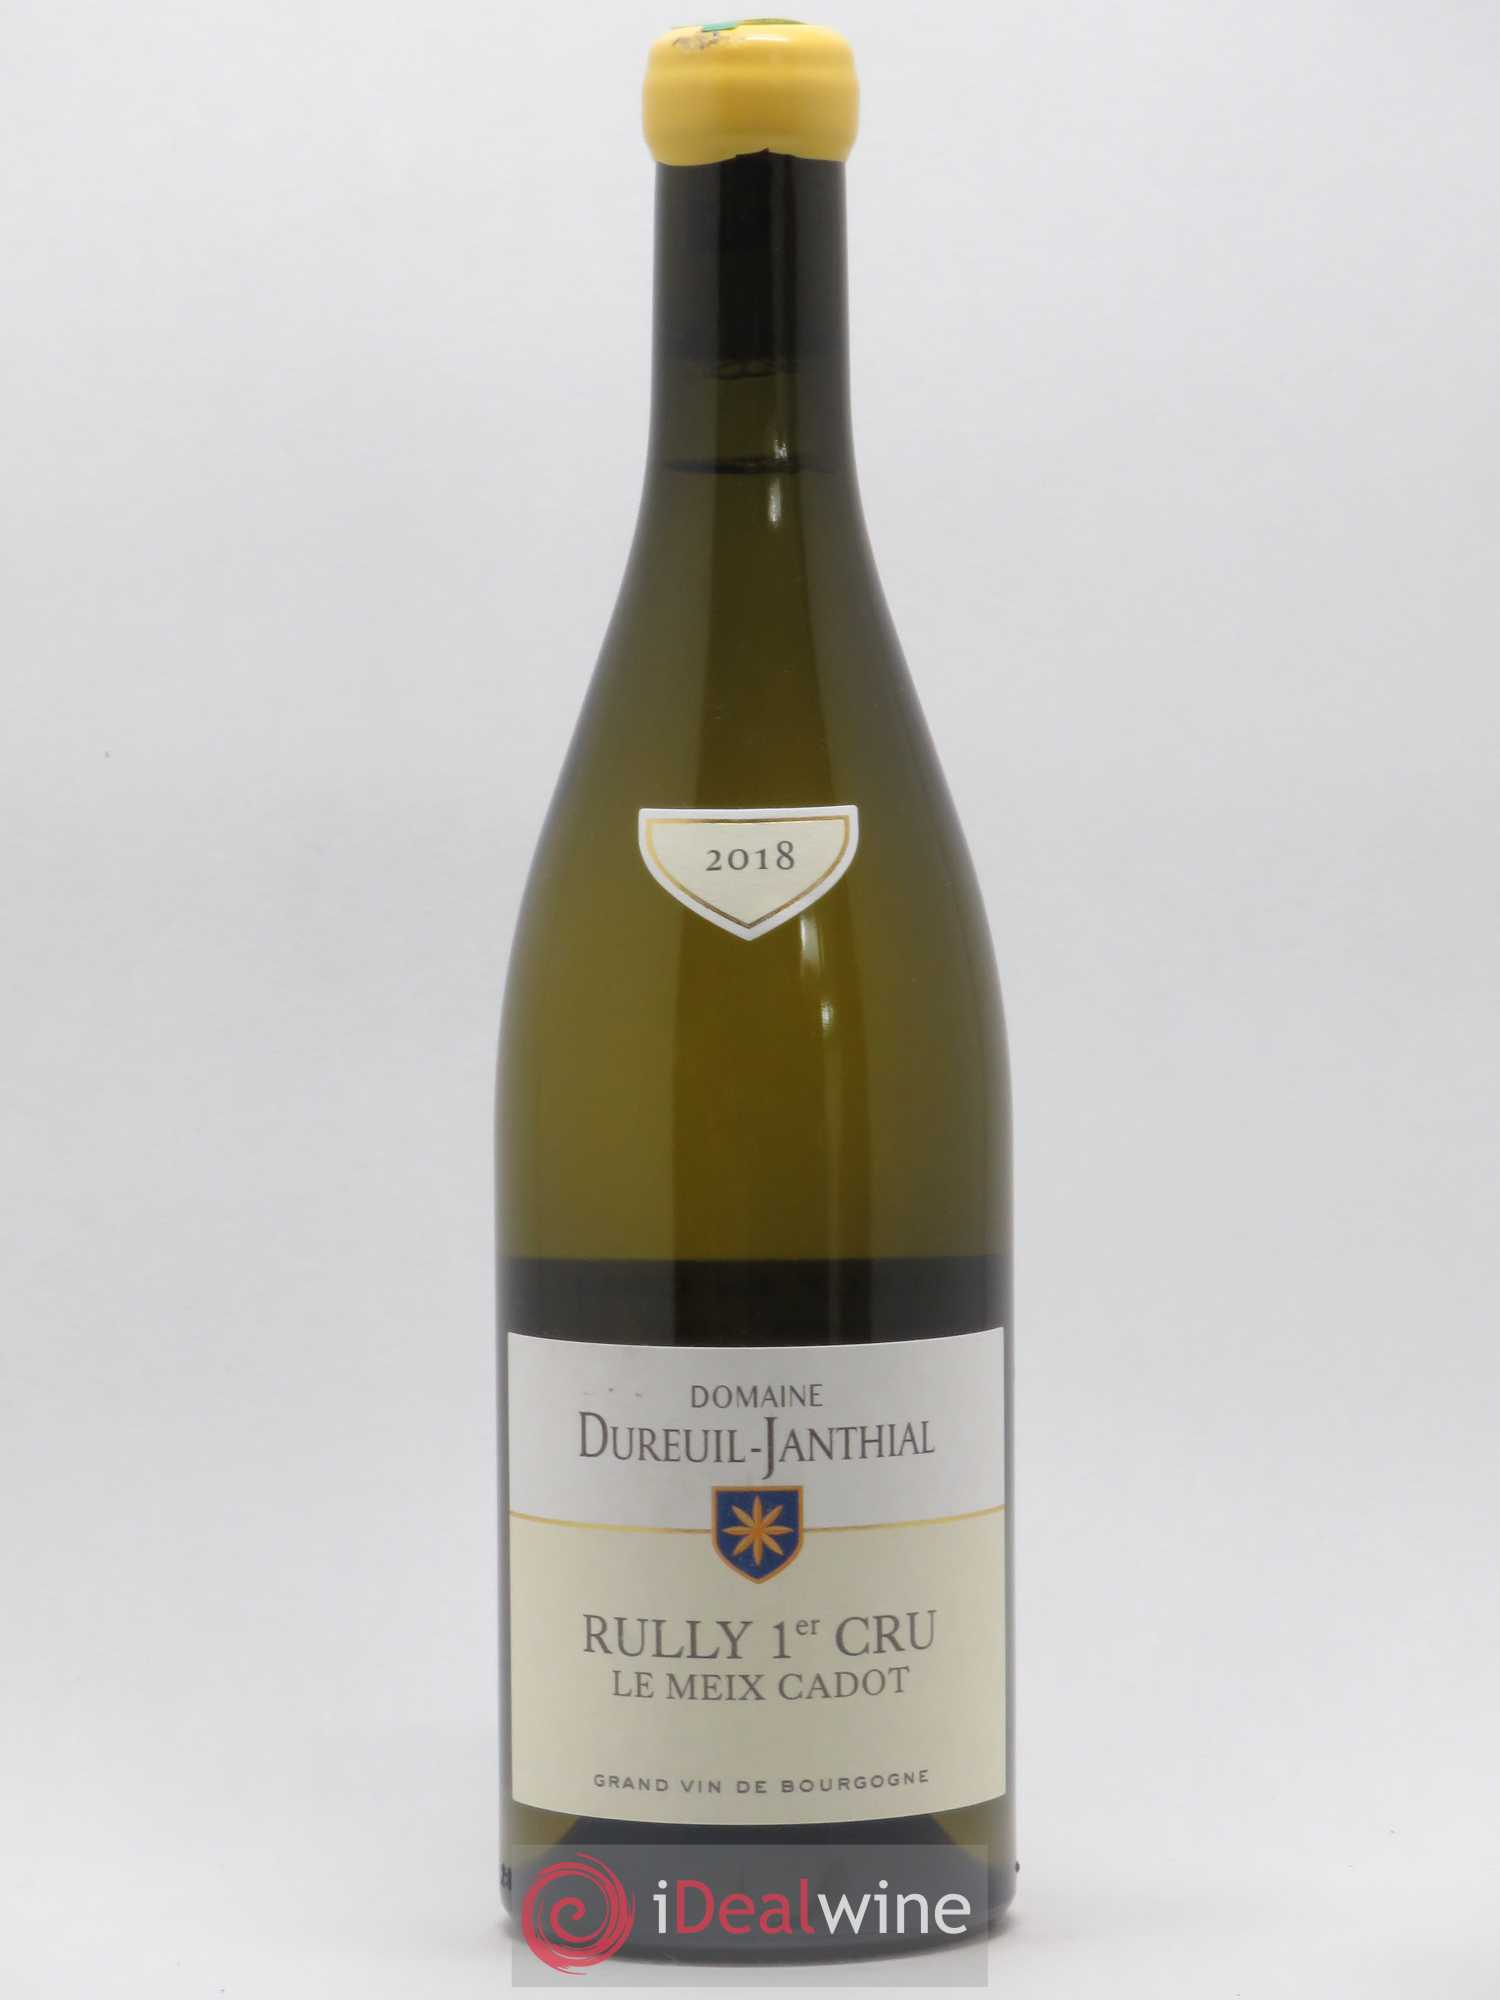 Rully 1er Cru Le Meix Cadot Vincent Dureuil-Janthial  2018 - Lot of 1 Bottle